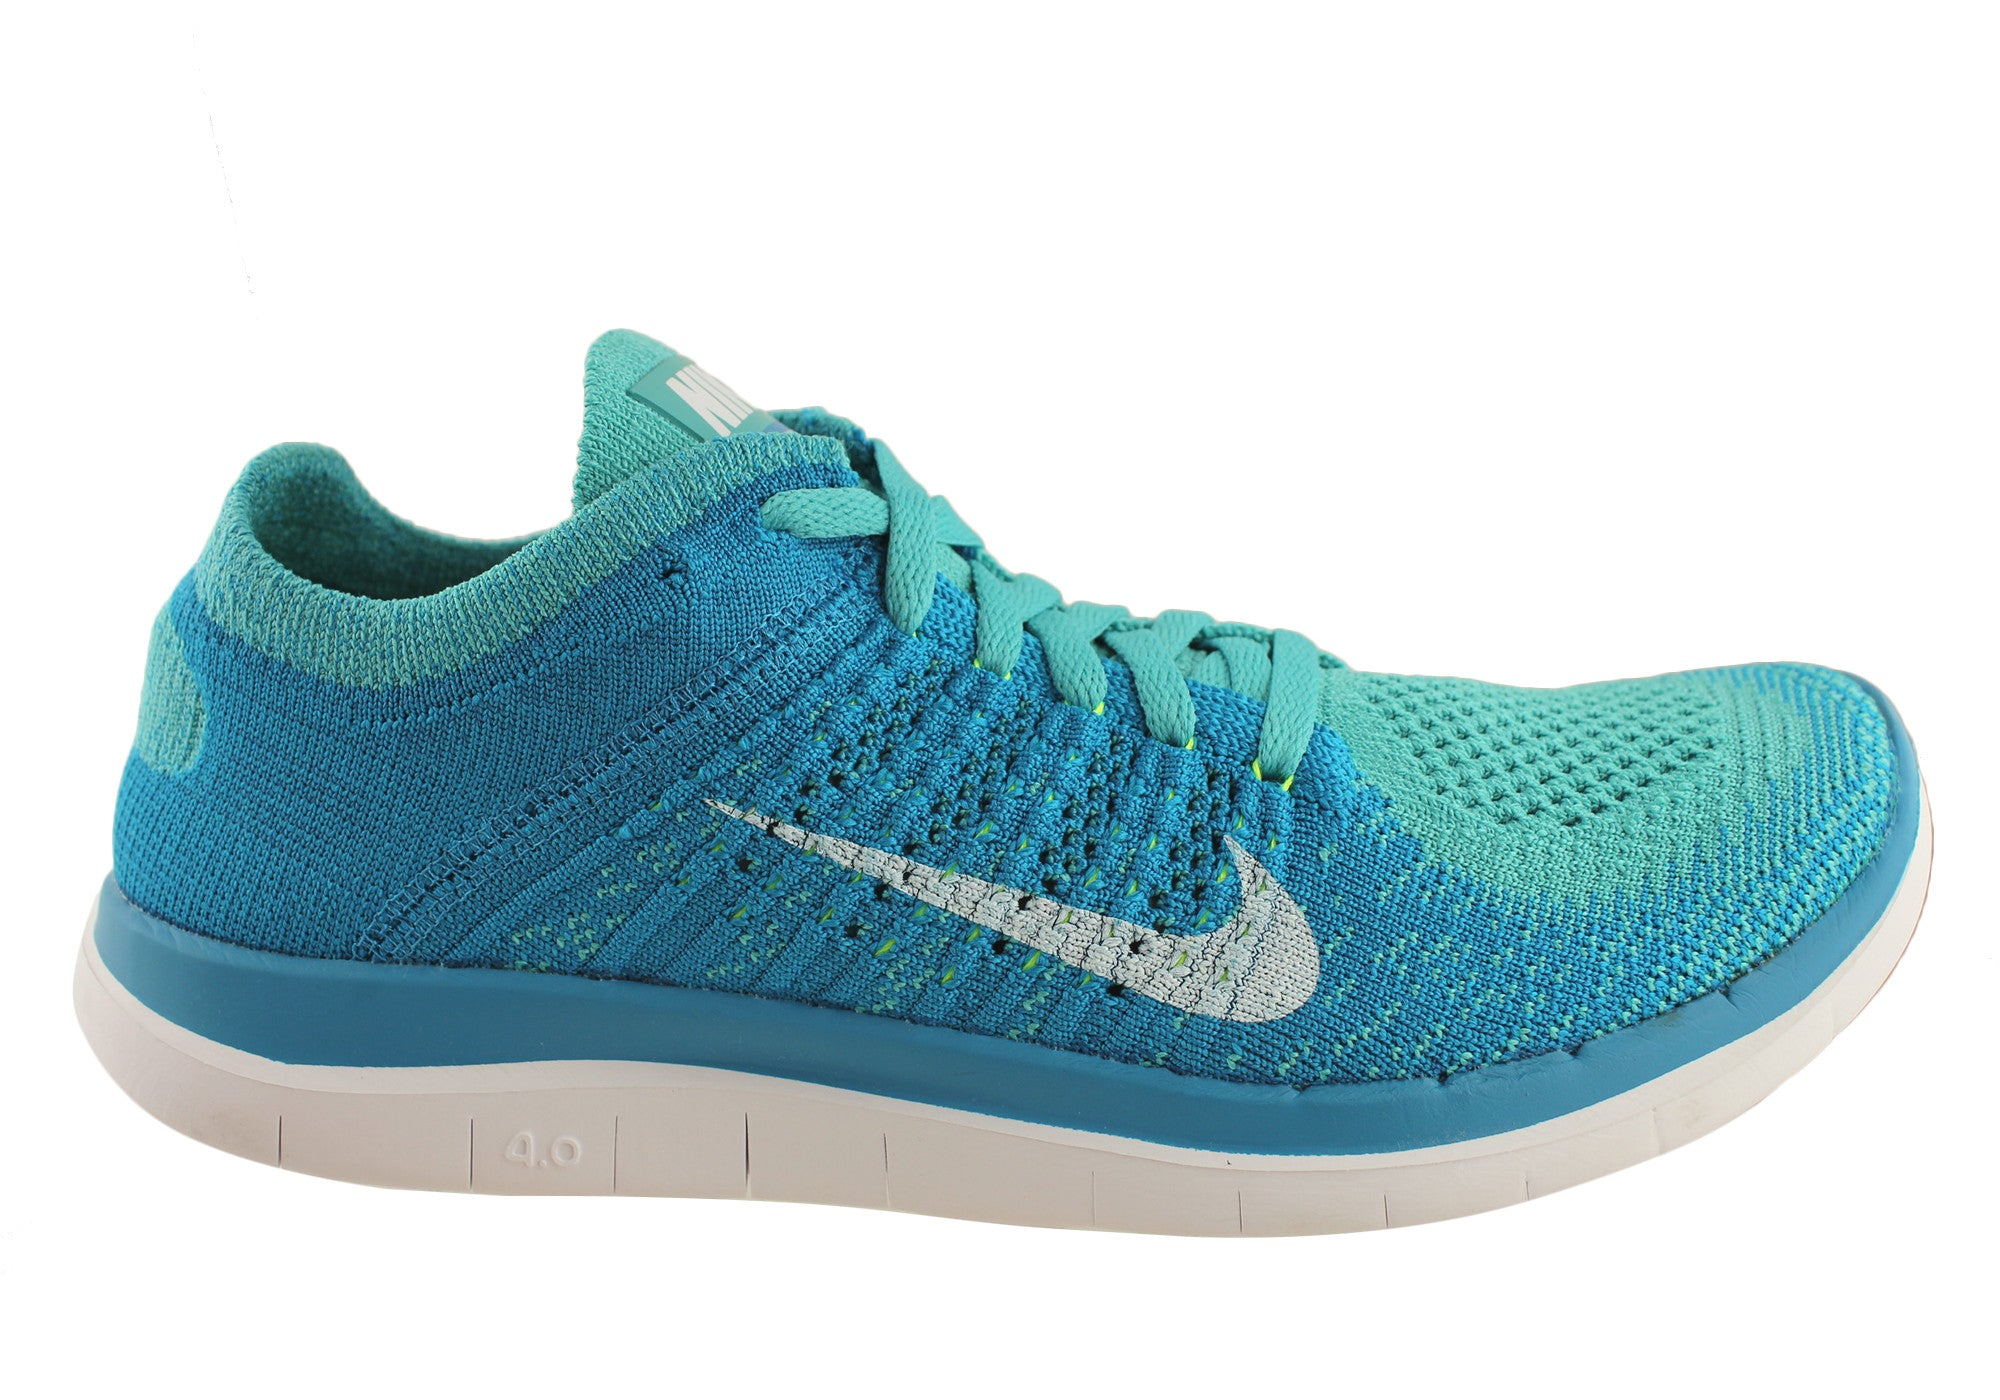 quality design a141b 31fd7 Nike Free Flyknit 4.0 Womens Lightweight Running Shoes ...